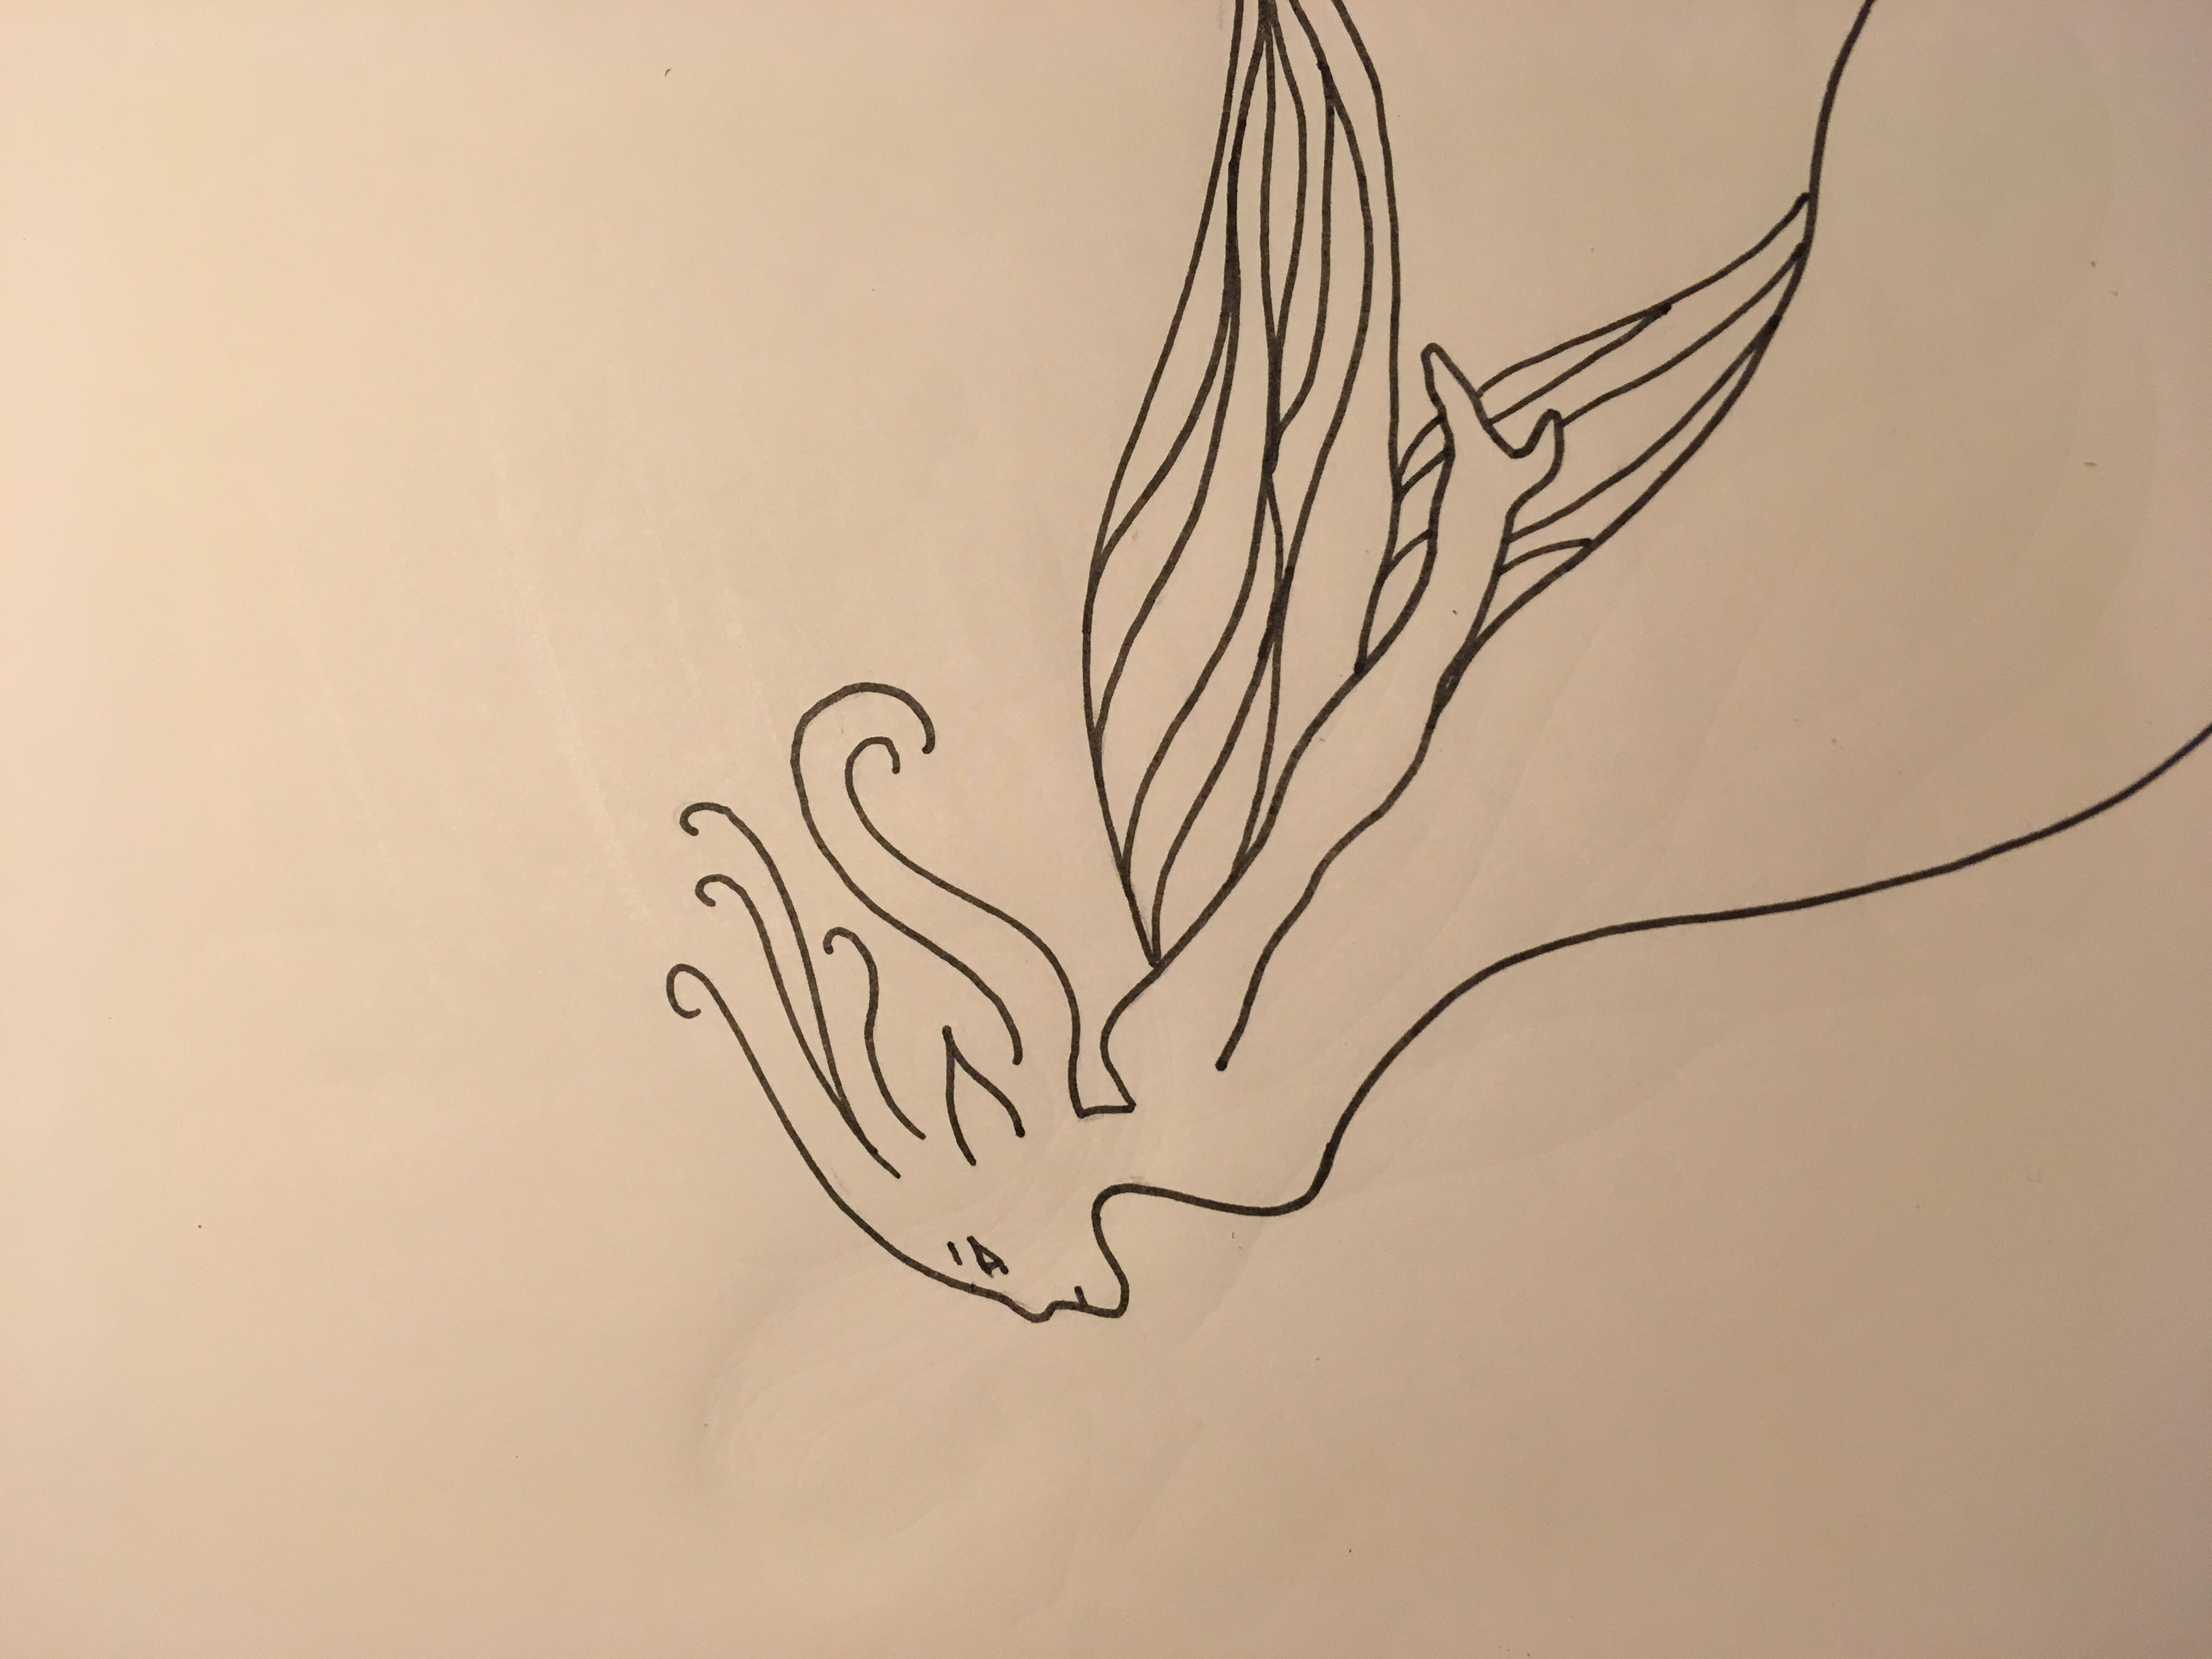 Fairy flying into wind black ink